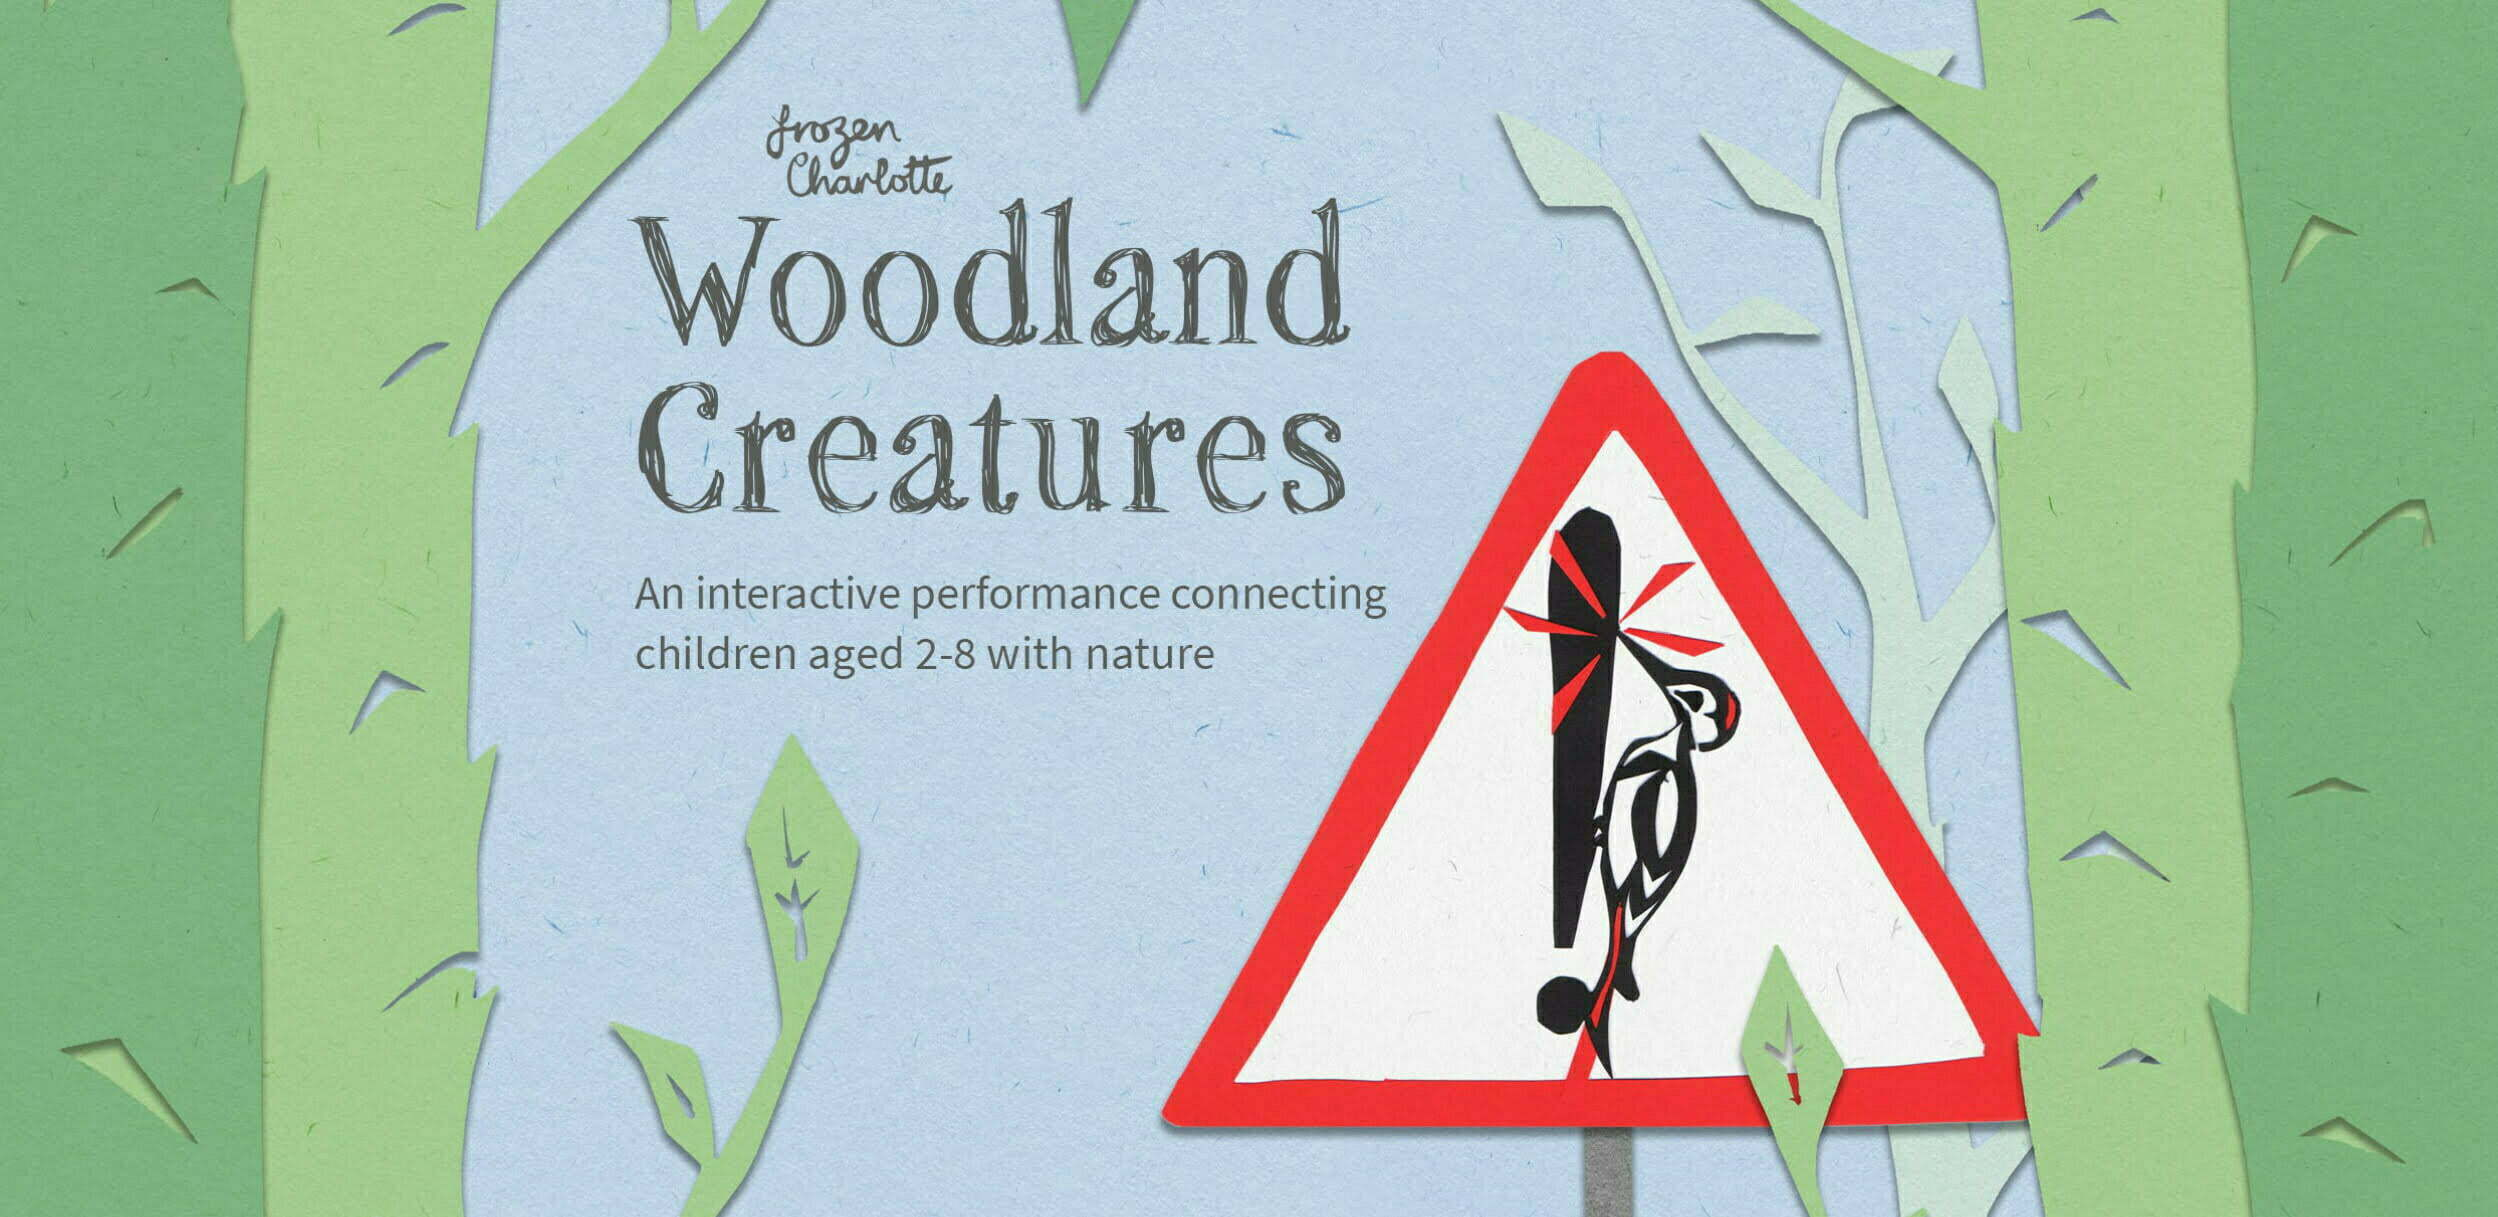 Woodland Creatures poster. A blue sky background with tall green trees on either side. Near the centre is a red and white triangle road traffic warning sign with a woodpecker pecking a black exclamation mark. Text reads: Frozen Charlotte, Woodland Creatures: an interactive performance connecting children aged 2-8 with nature.